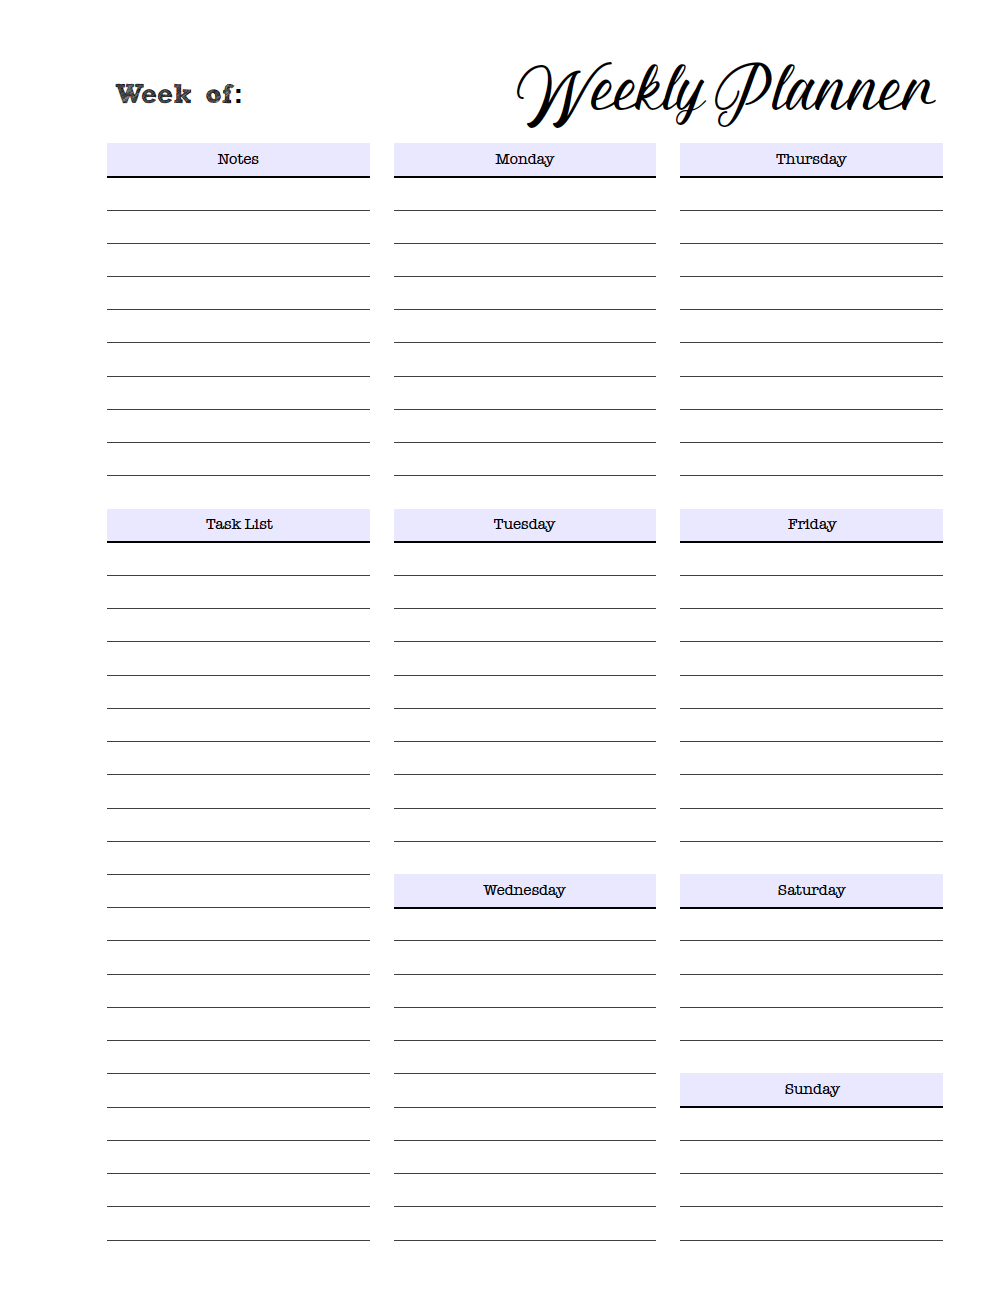 Free Printable Weekly Planners: Monday Start throughout Printable Calendar Daily Planner